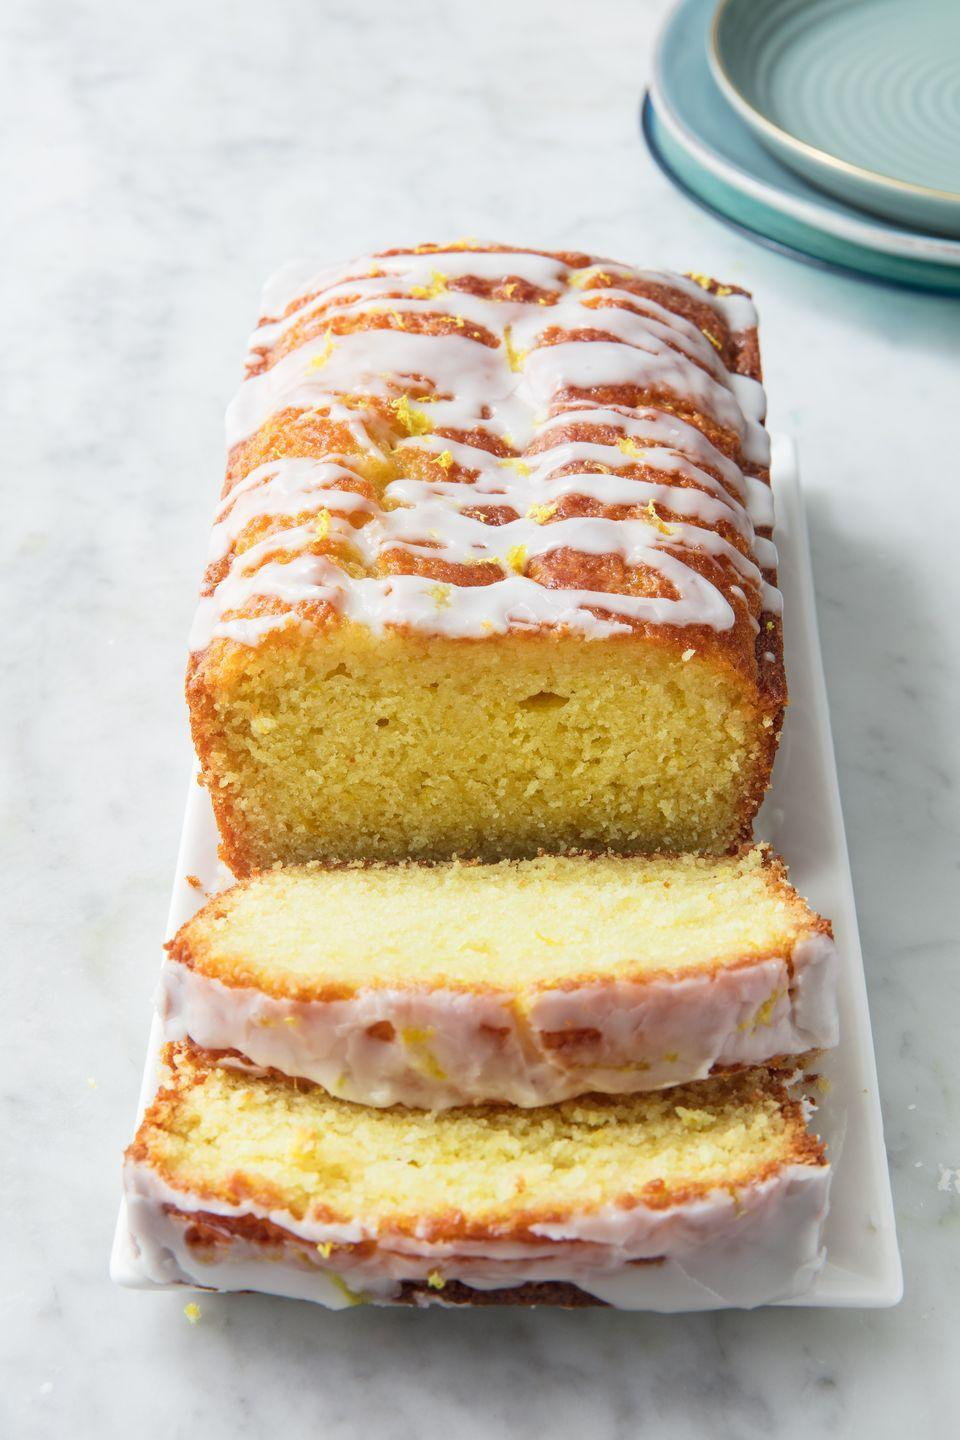 """<p>Even better than Starbucks.</p><p>Get the recipe from <a href=""""https://www.delish.com/cooking/recipe-ideas/a19880302/iced-lemon-pound-cake-recipe/"""" rel=""""nofollow noopener"""" target=""""_blank"""" data-ylk=""""slk:Delish"""" class=""""link rapid-noclick-resp"""">Delish</a>. </p>"""